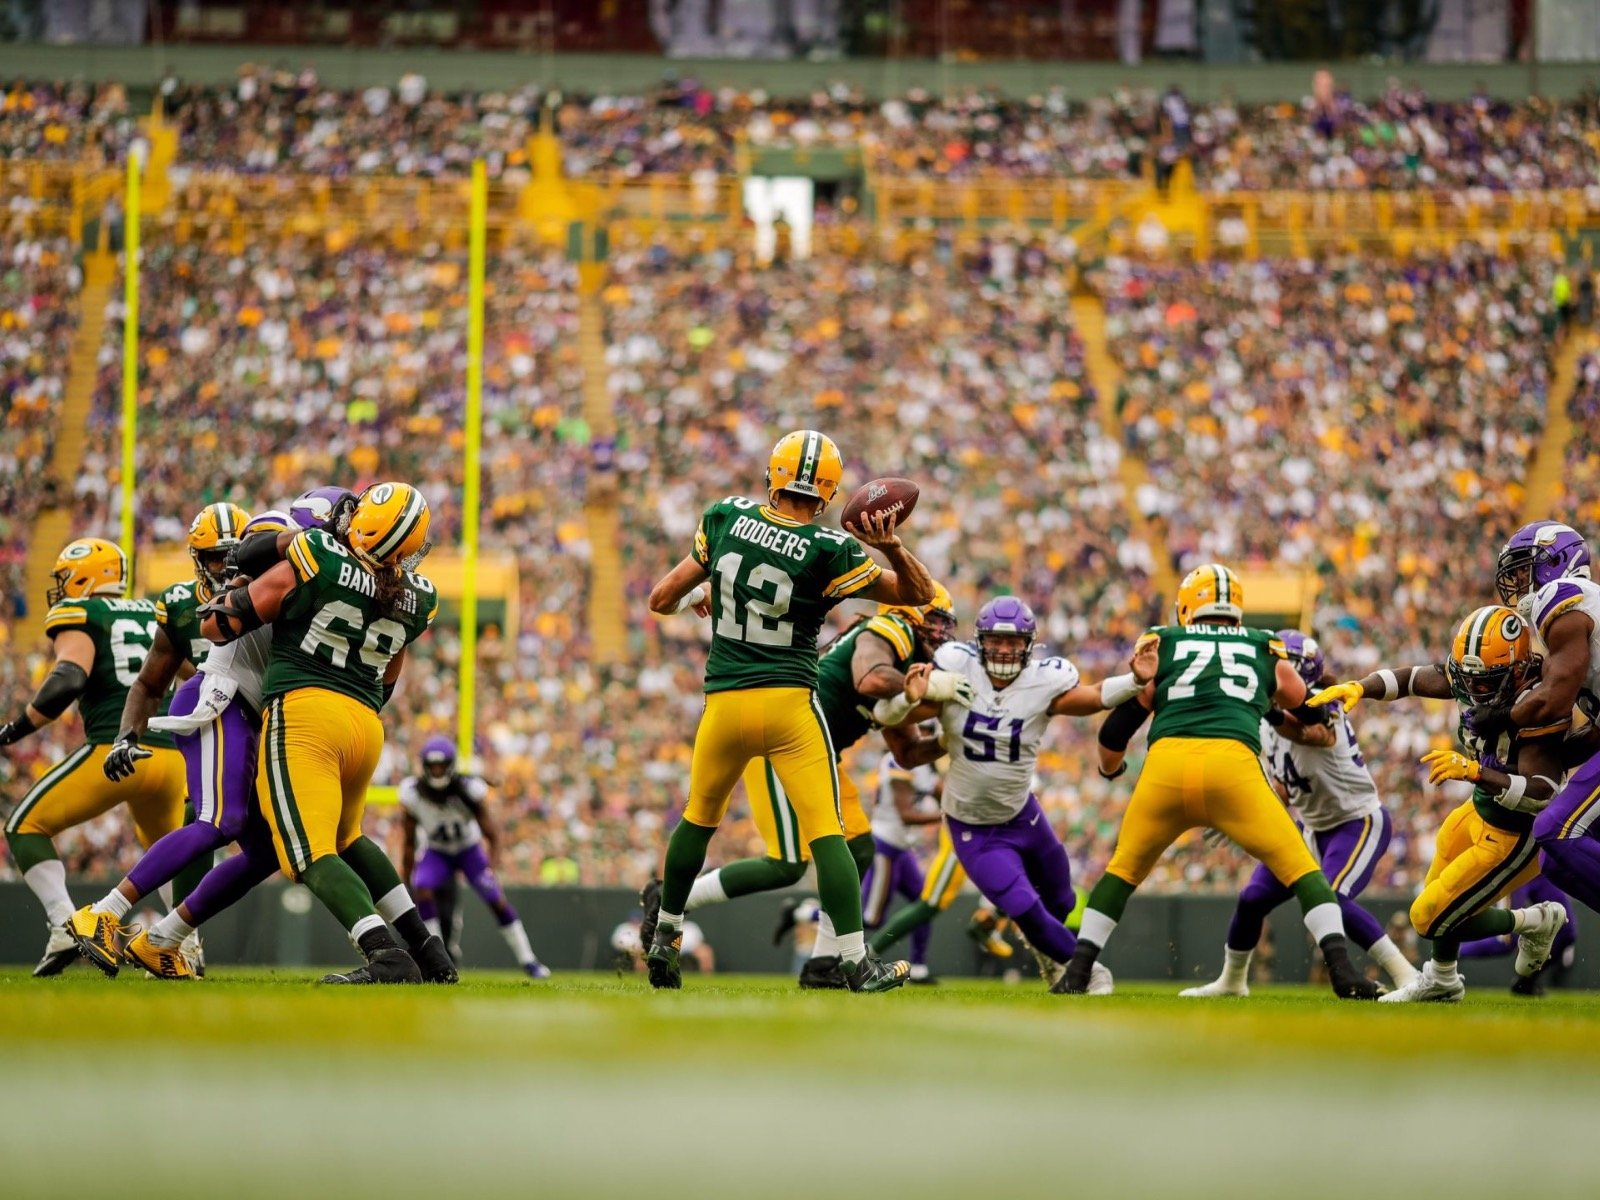 10 Cool Images From The Packers Cool Home Opening Win Over The Vikings